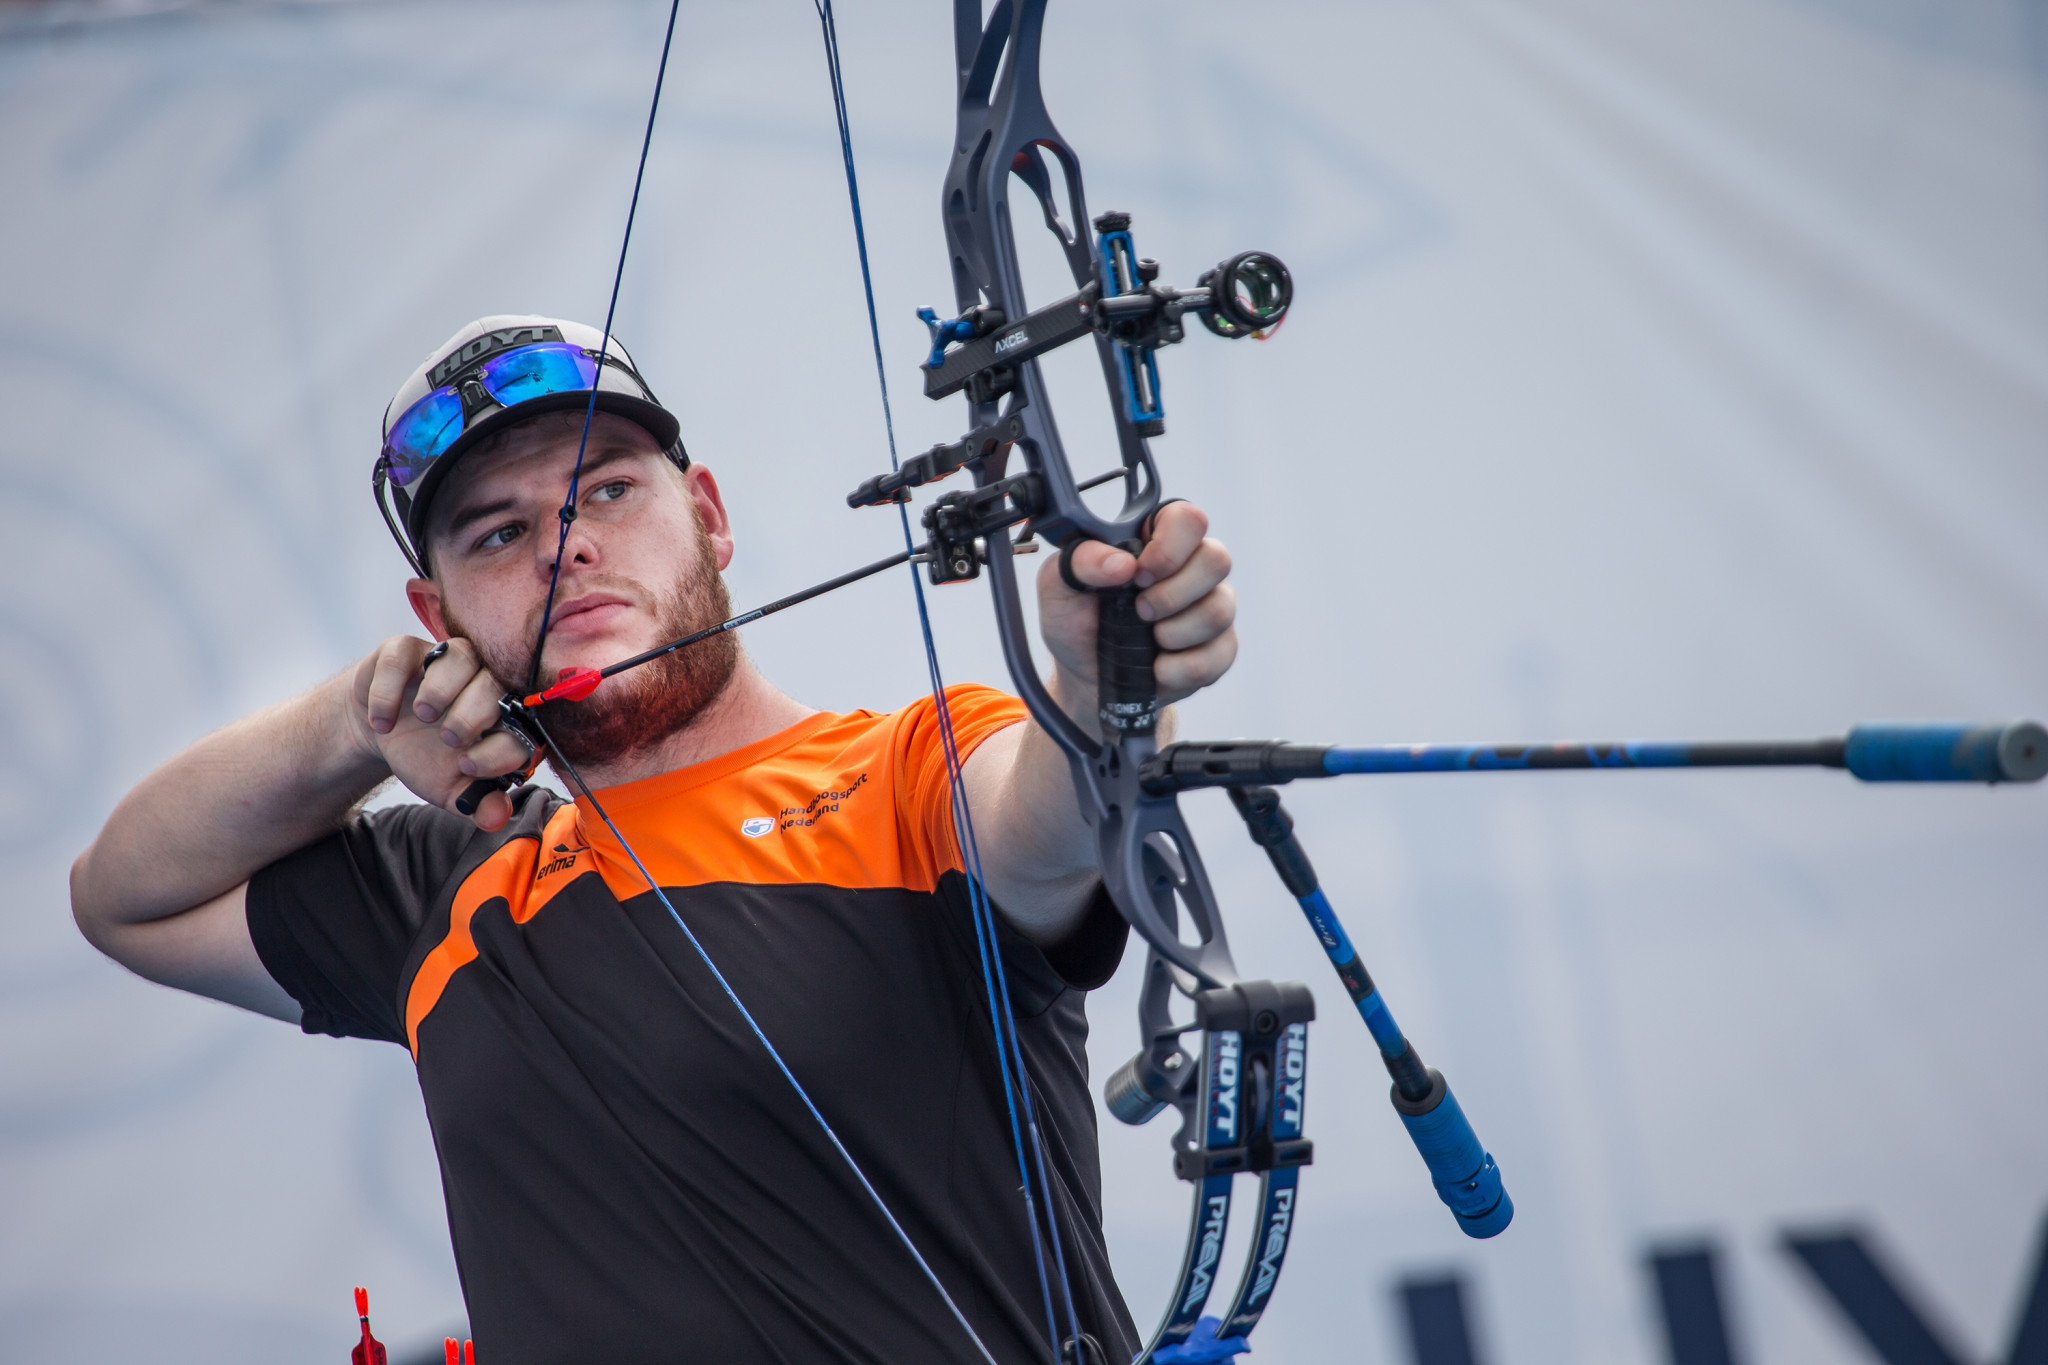 Schloesser impresses on second day at World Archery Indoor Series in Luxembourg